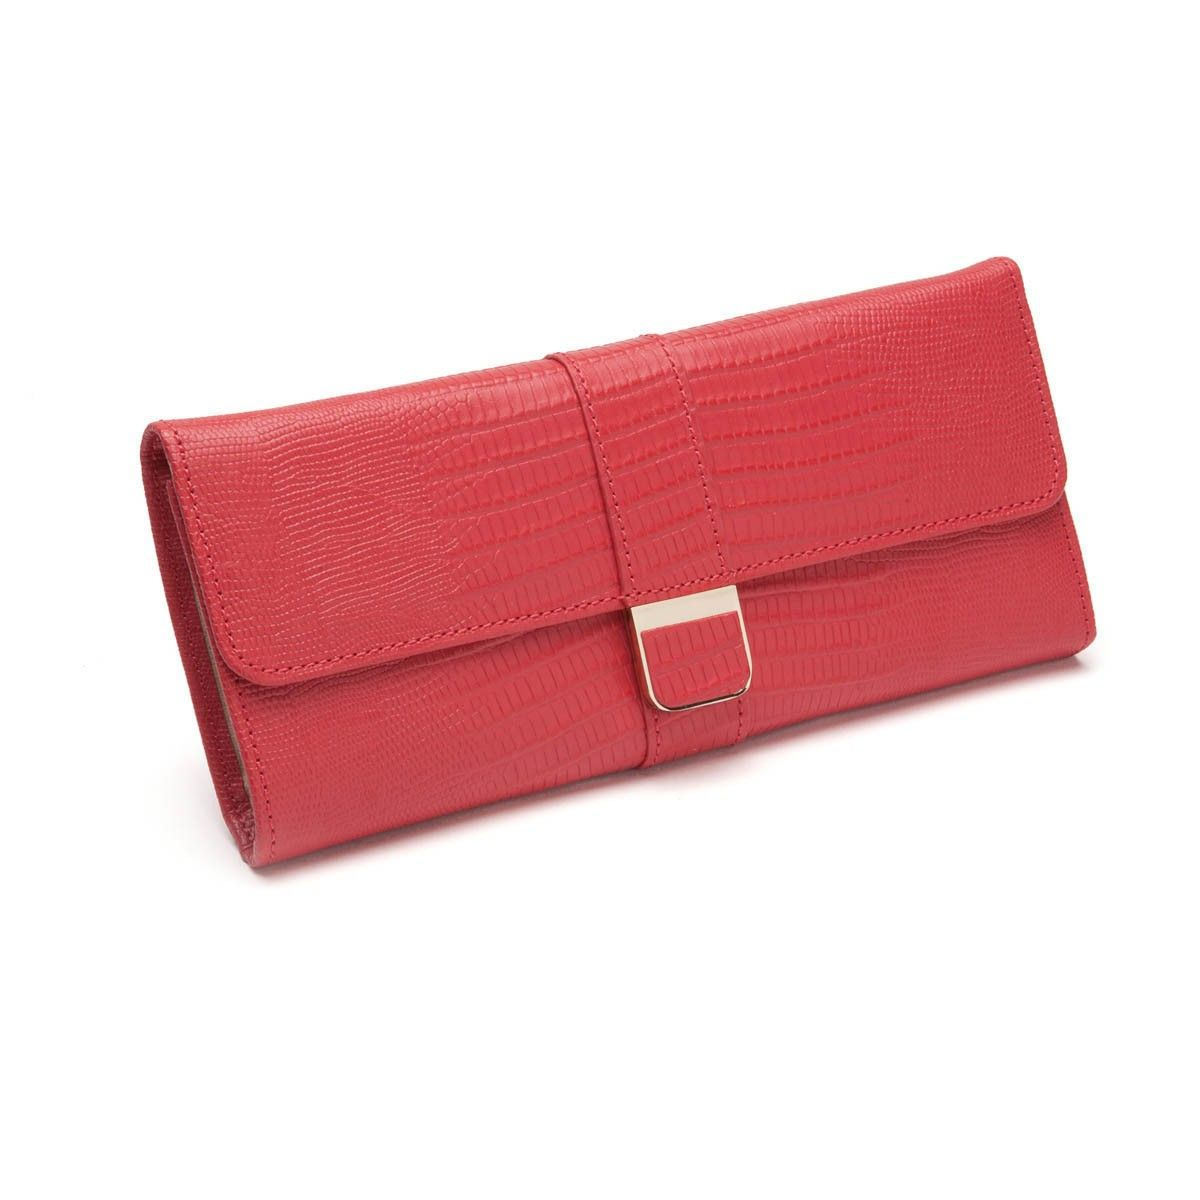 Palermo Leather Jewelry Roll in Coral Designer Jewelry Rolls